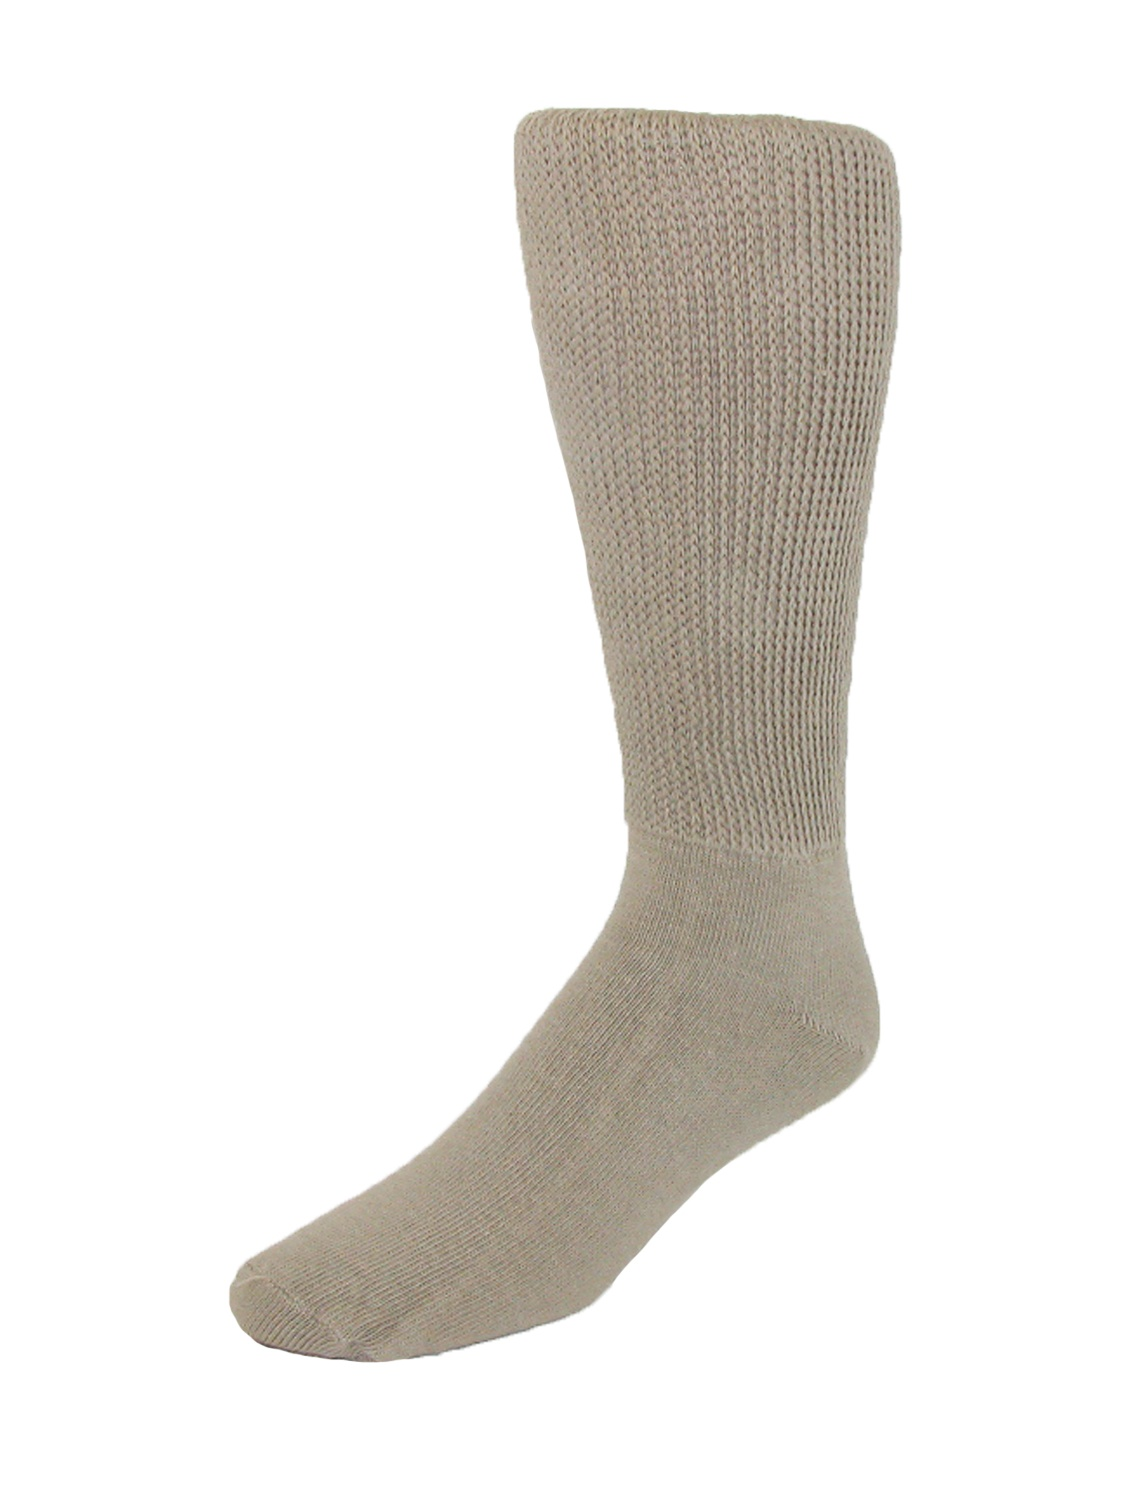 Size Large Mens Cotton Mid Calf Athletic Socks, Black